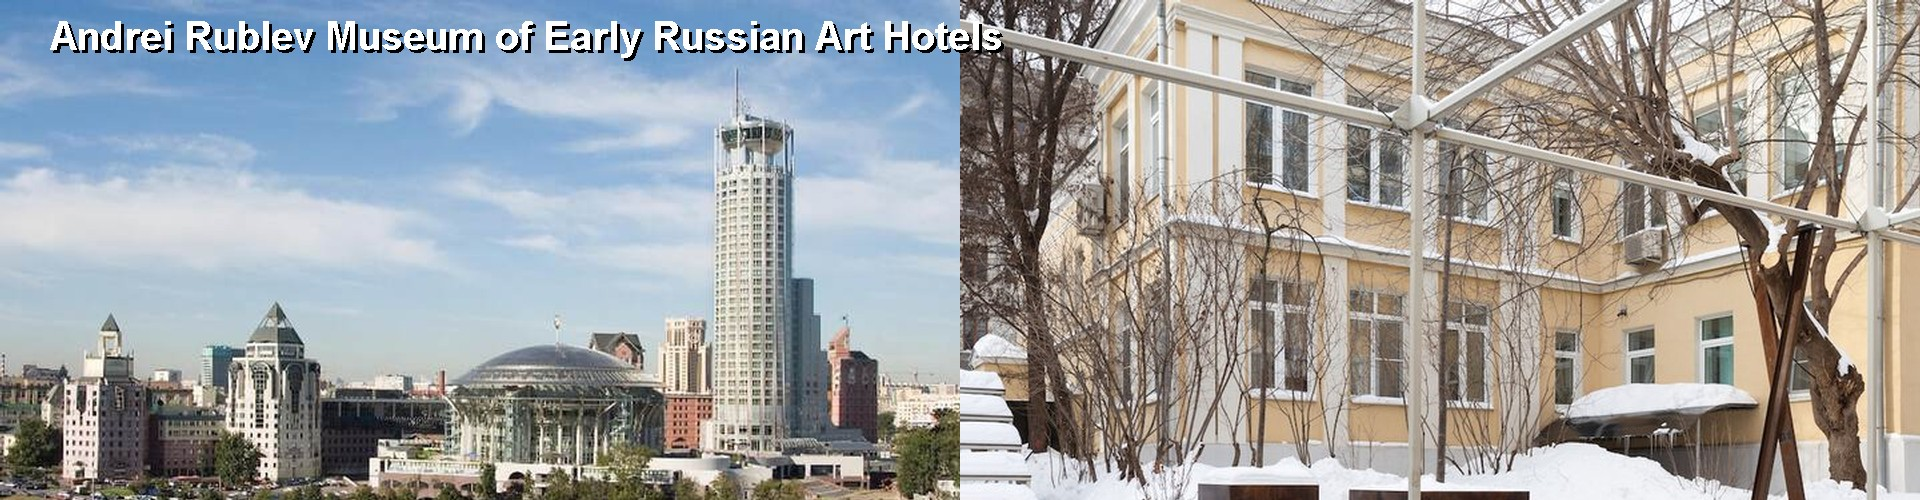 5 Best Hotels near Andrei Rublev Museum of Early Russian Art